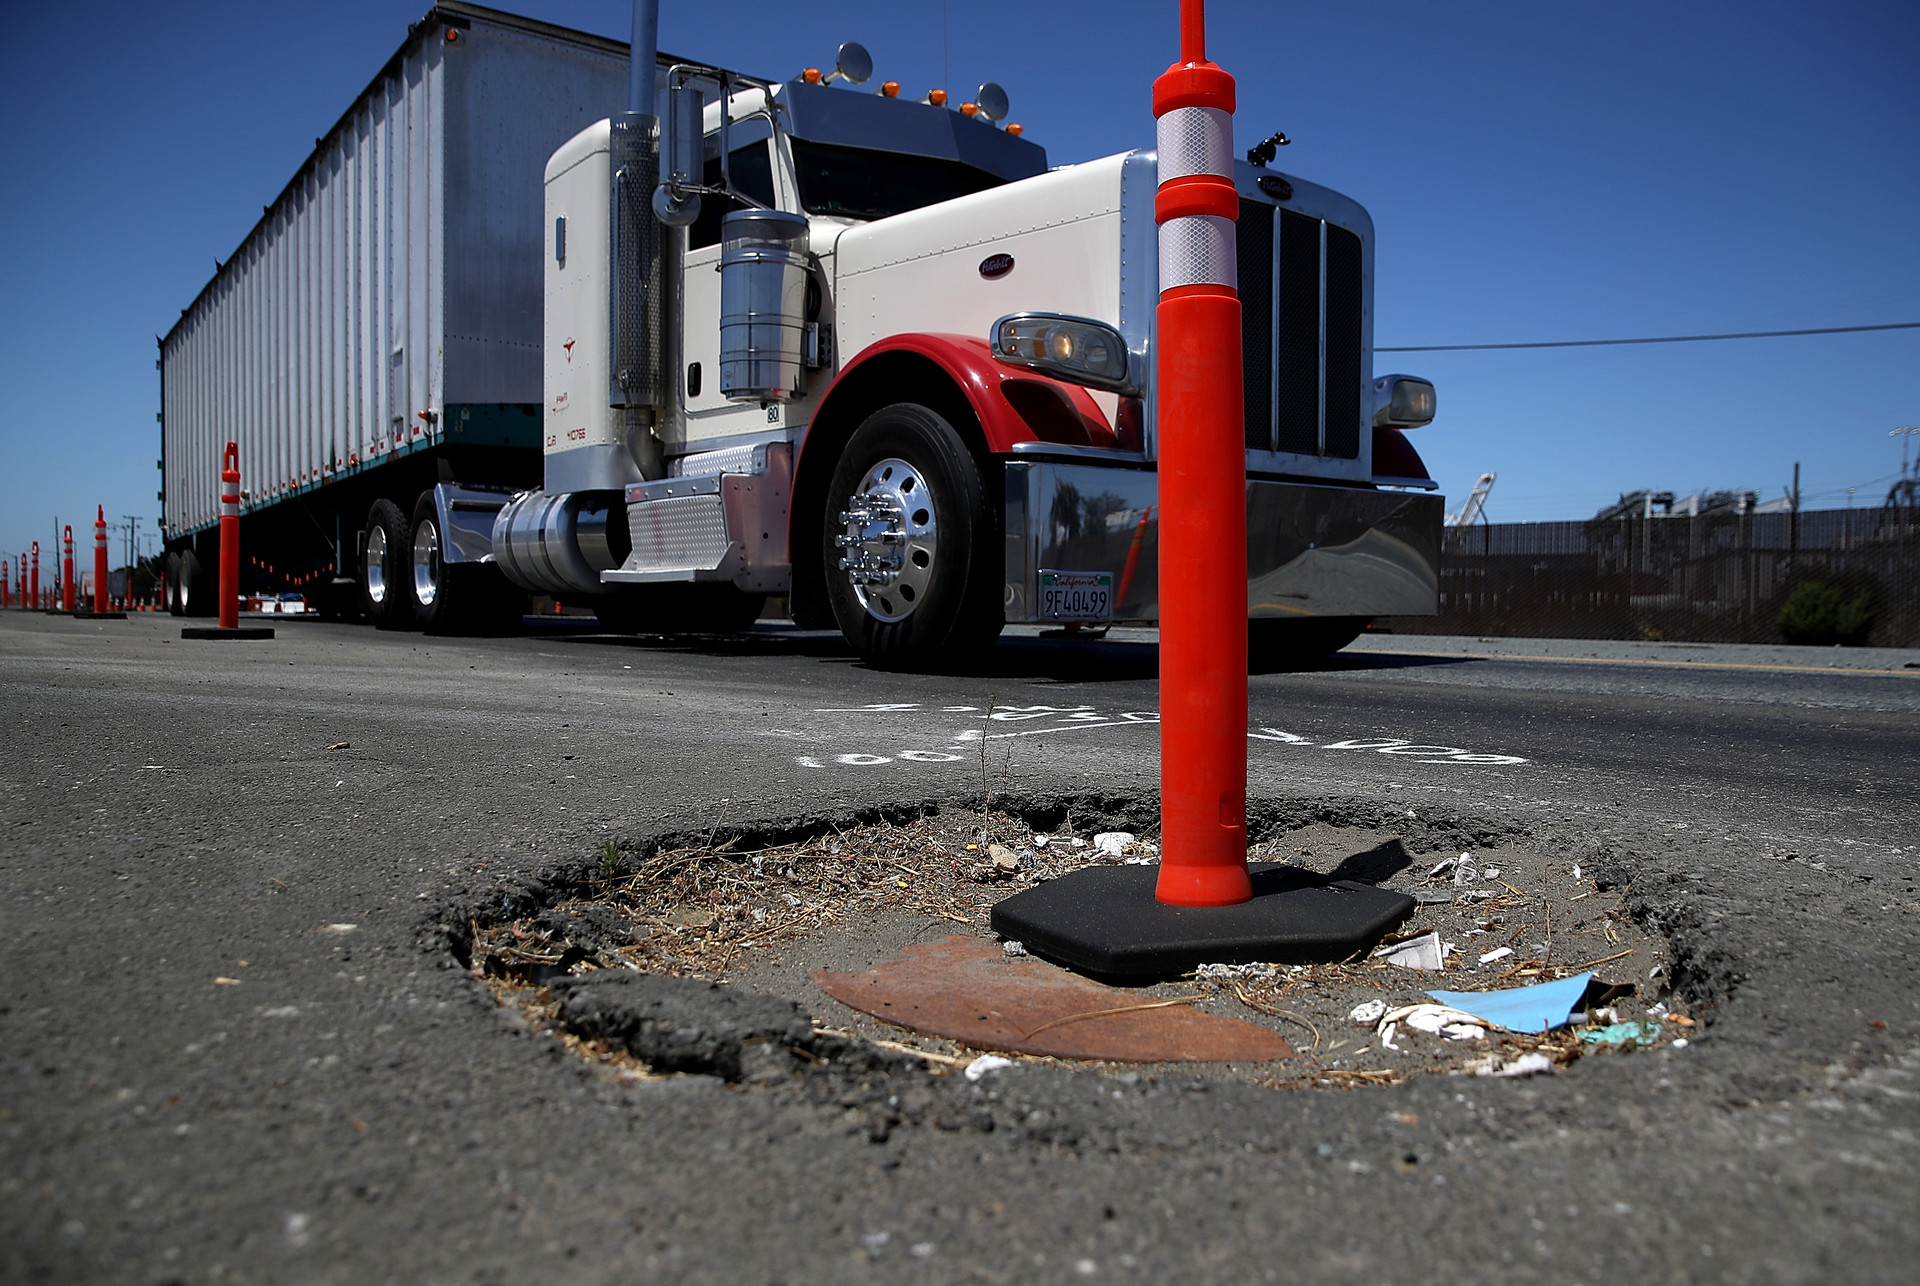 Oakland's 'Pothole Vigilantes' Take Street Repairs Into Their Own Hands